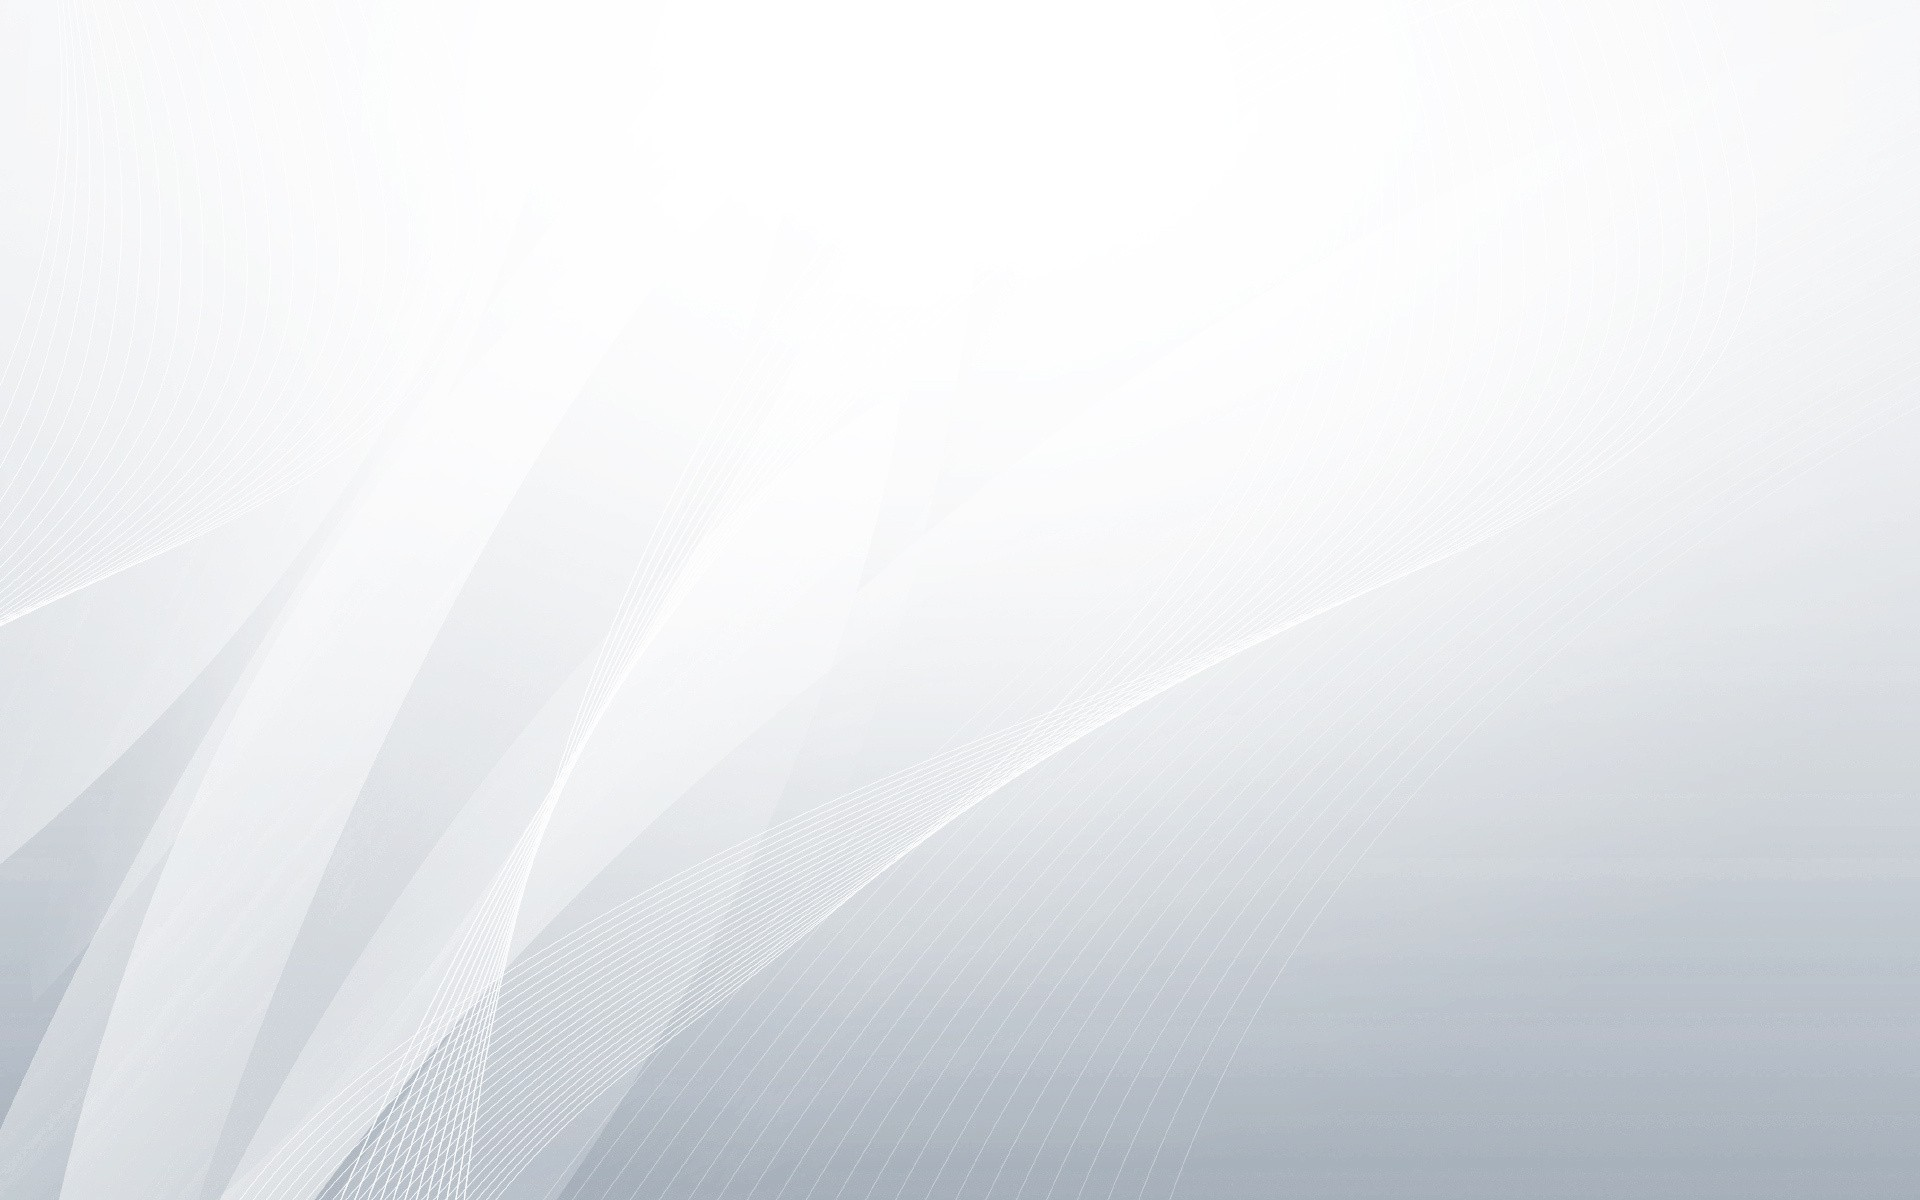 Lines background download free high resolution - White abstract background hd ...